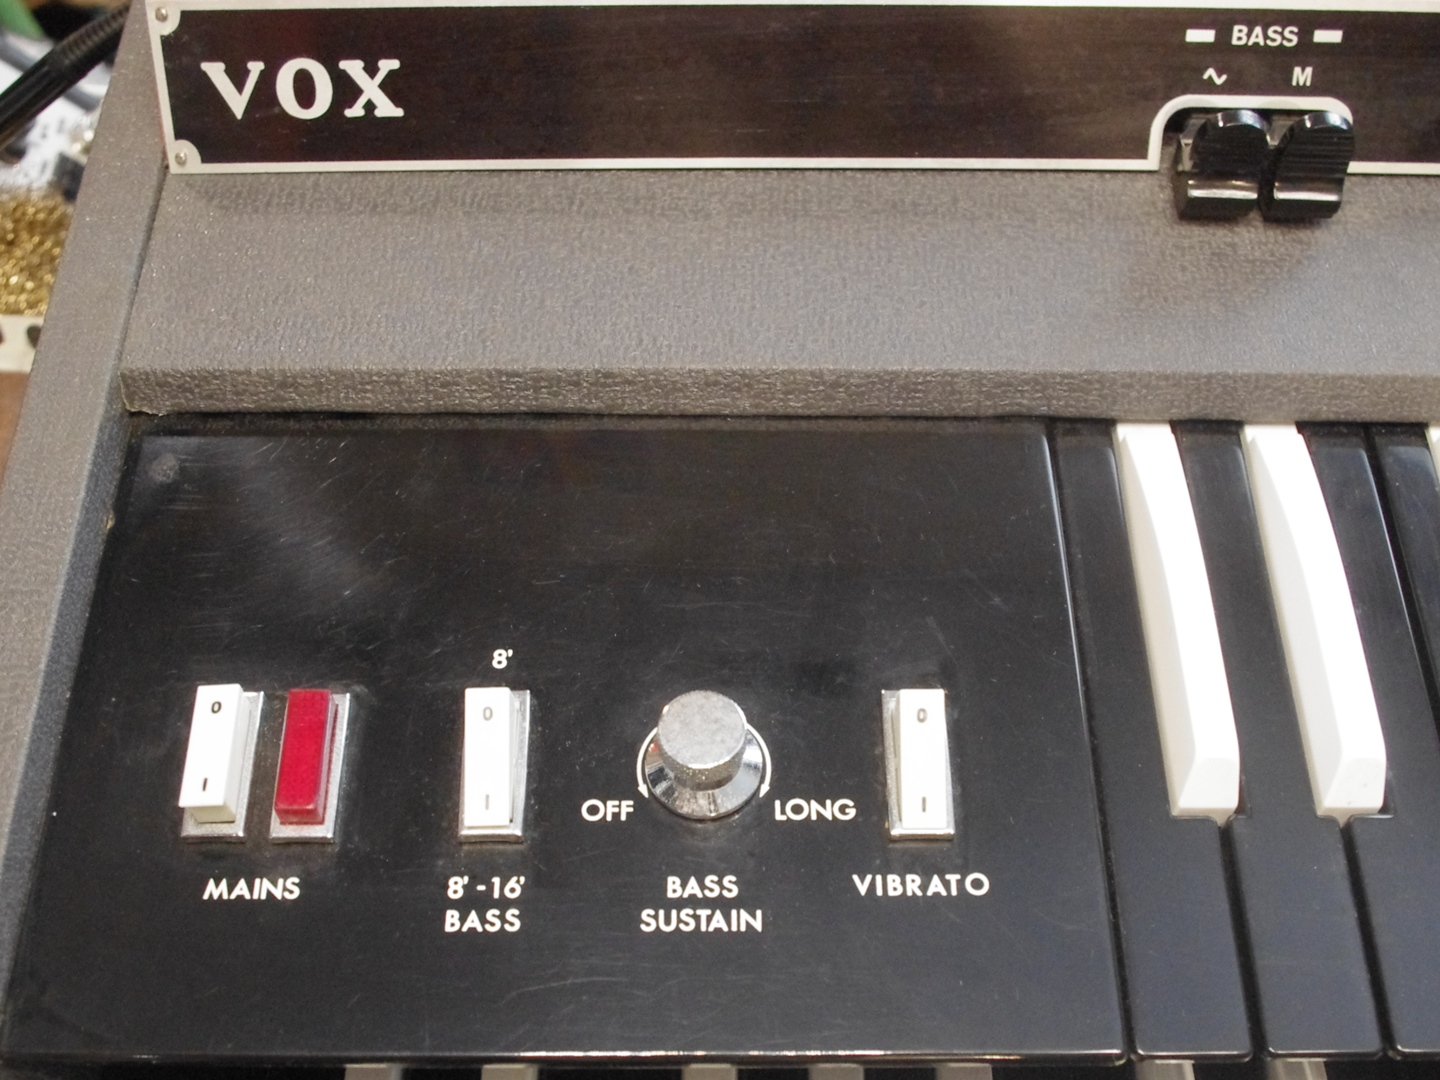 Vox Super Continental Organ controls